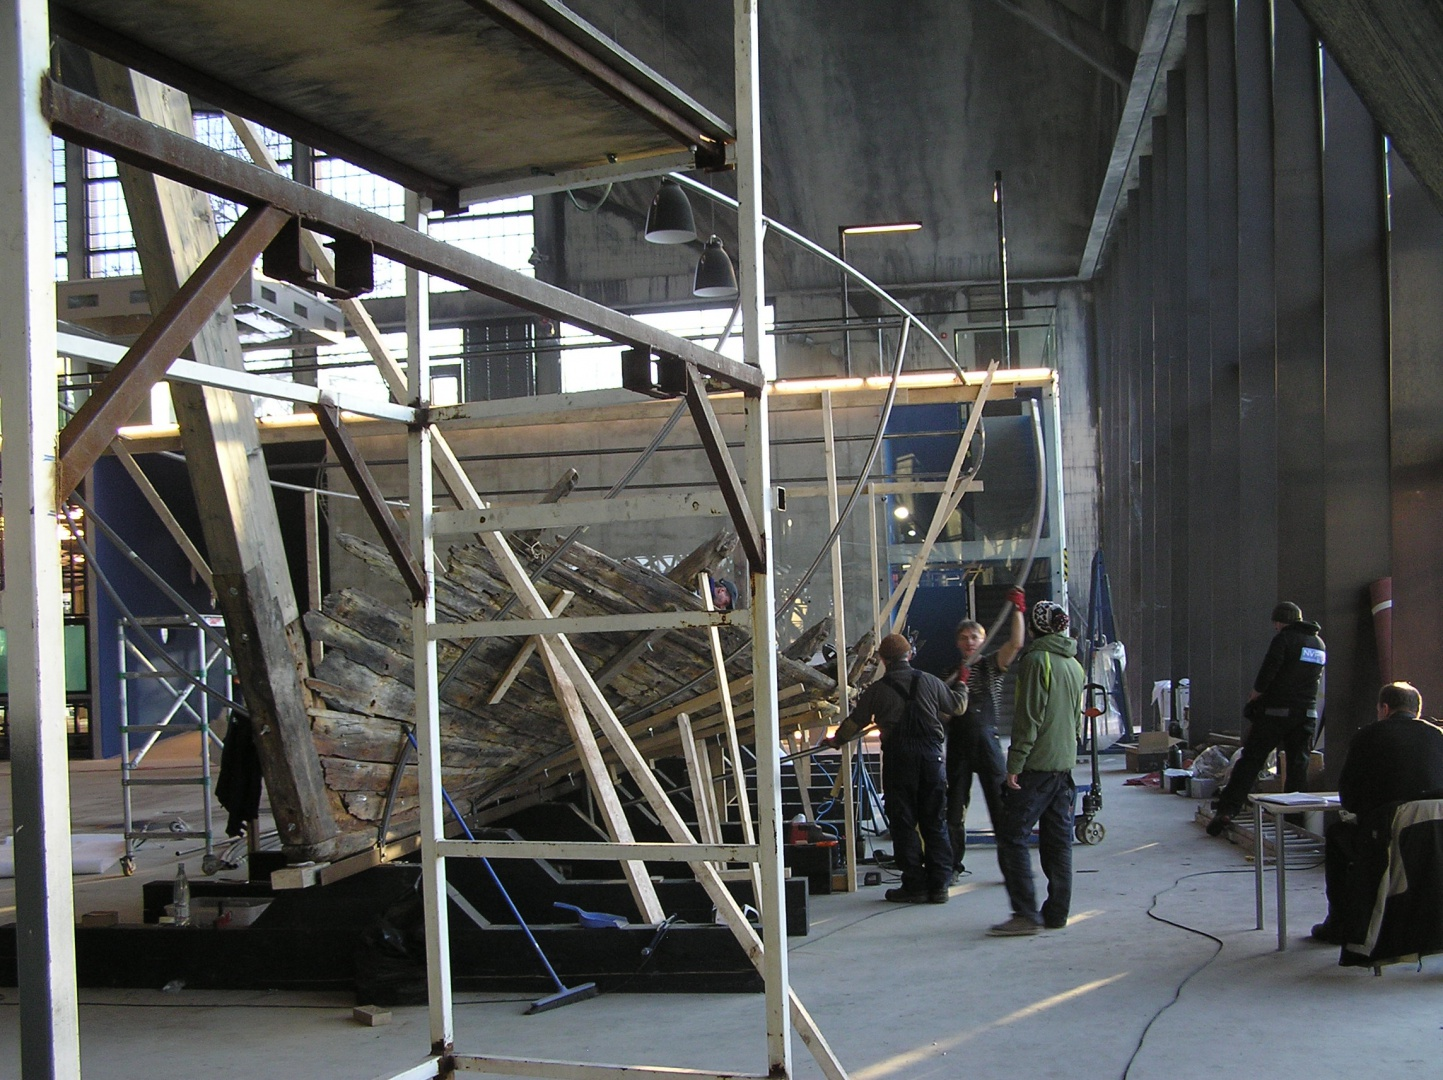 ill 3. Placing the wreck on the exposition stand. Seaplane harbour, 2011.